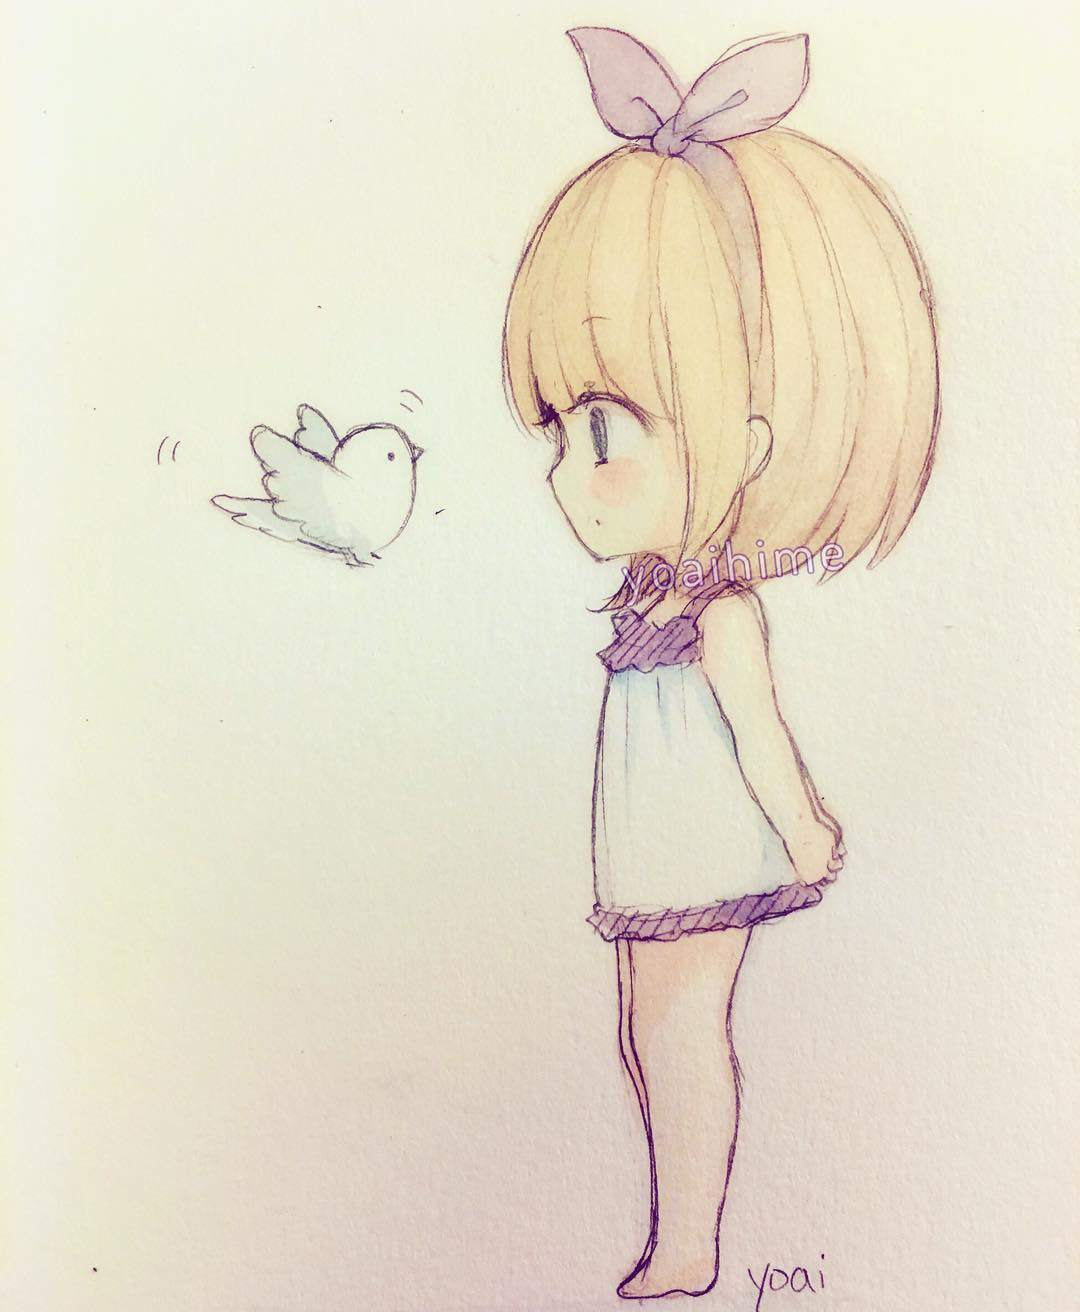 1080x1312 Cute Anime Drawings Chibi Drawing In Pencil Anime For Gt Easy Cute